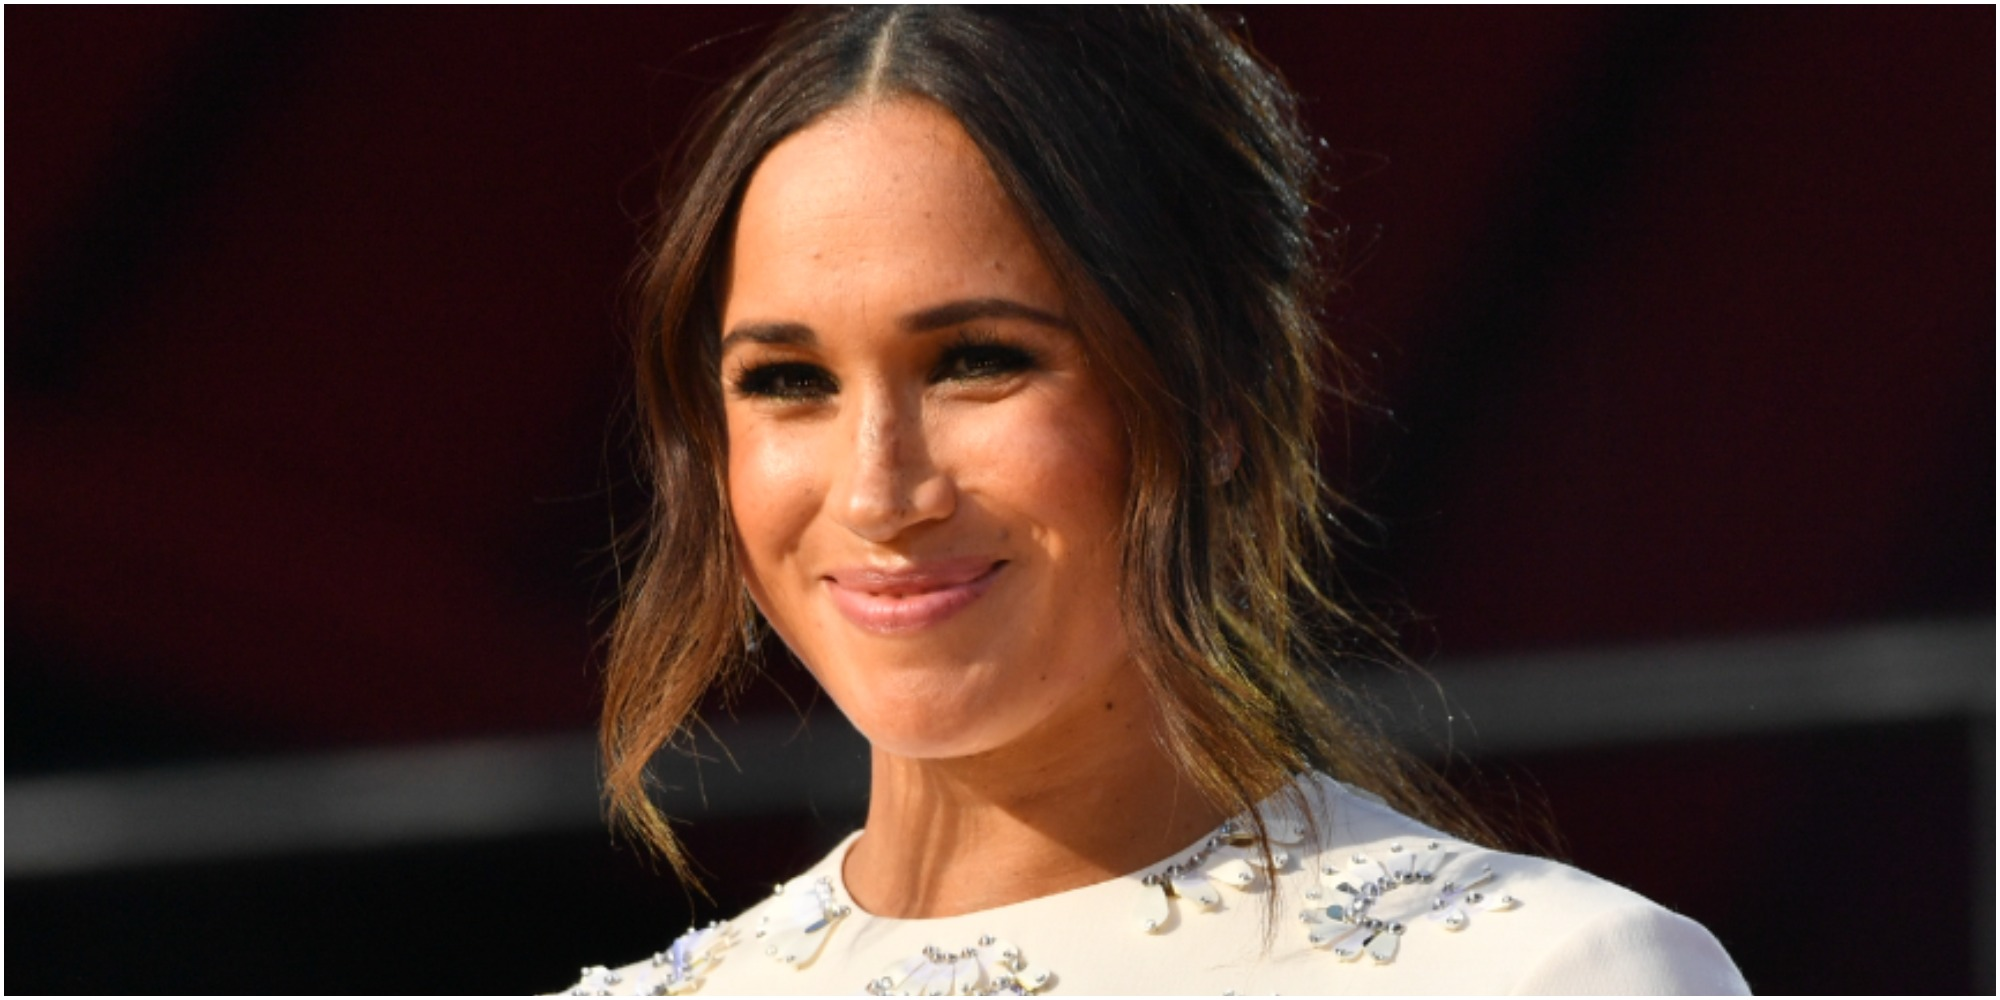 Meghan Markle's latest accessory screamed Princess Diana's name without saying a word.